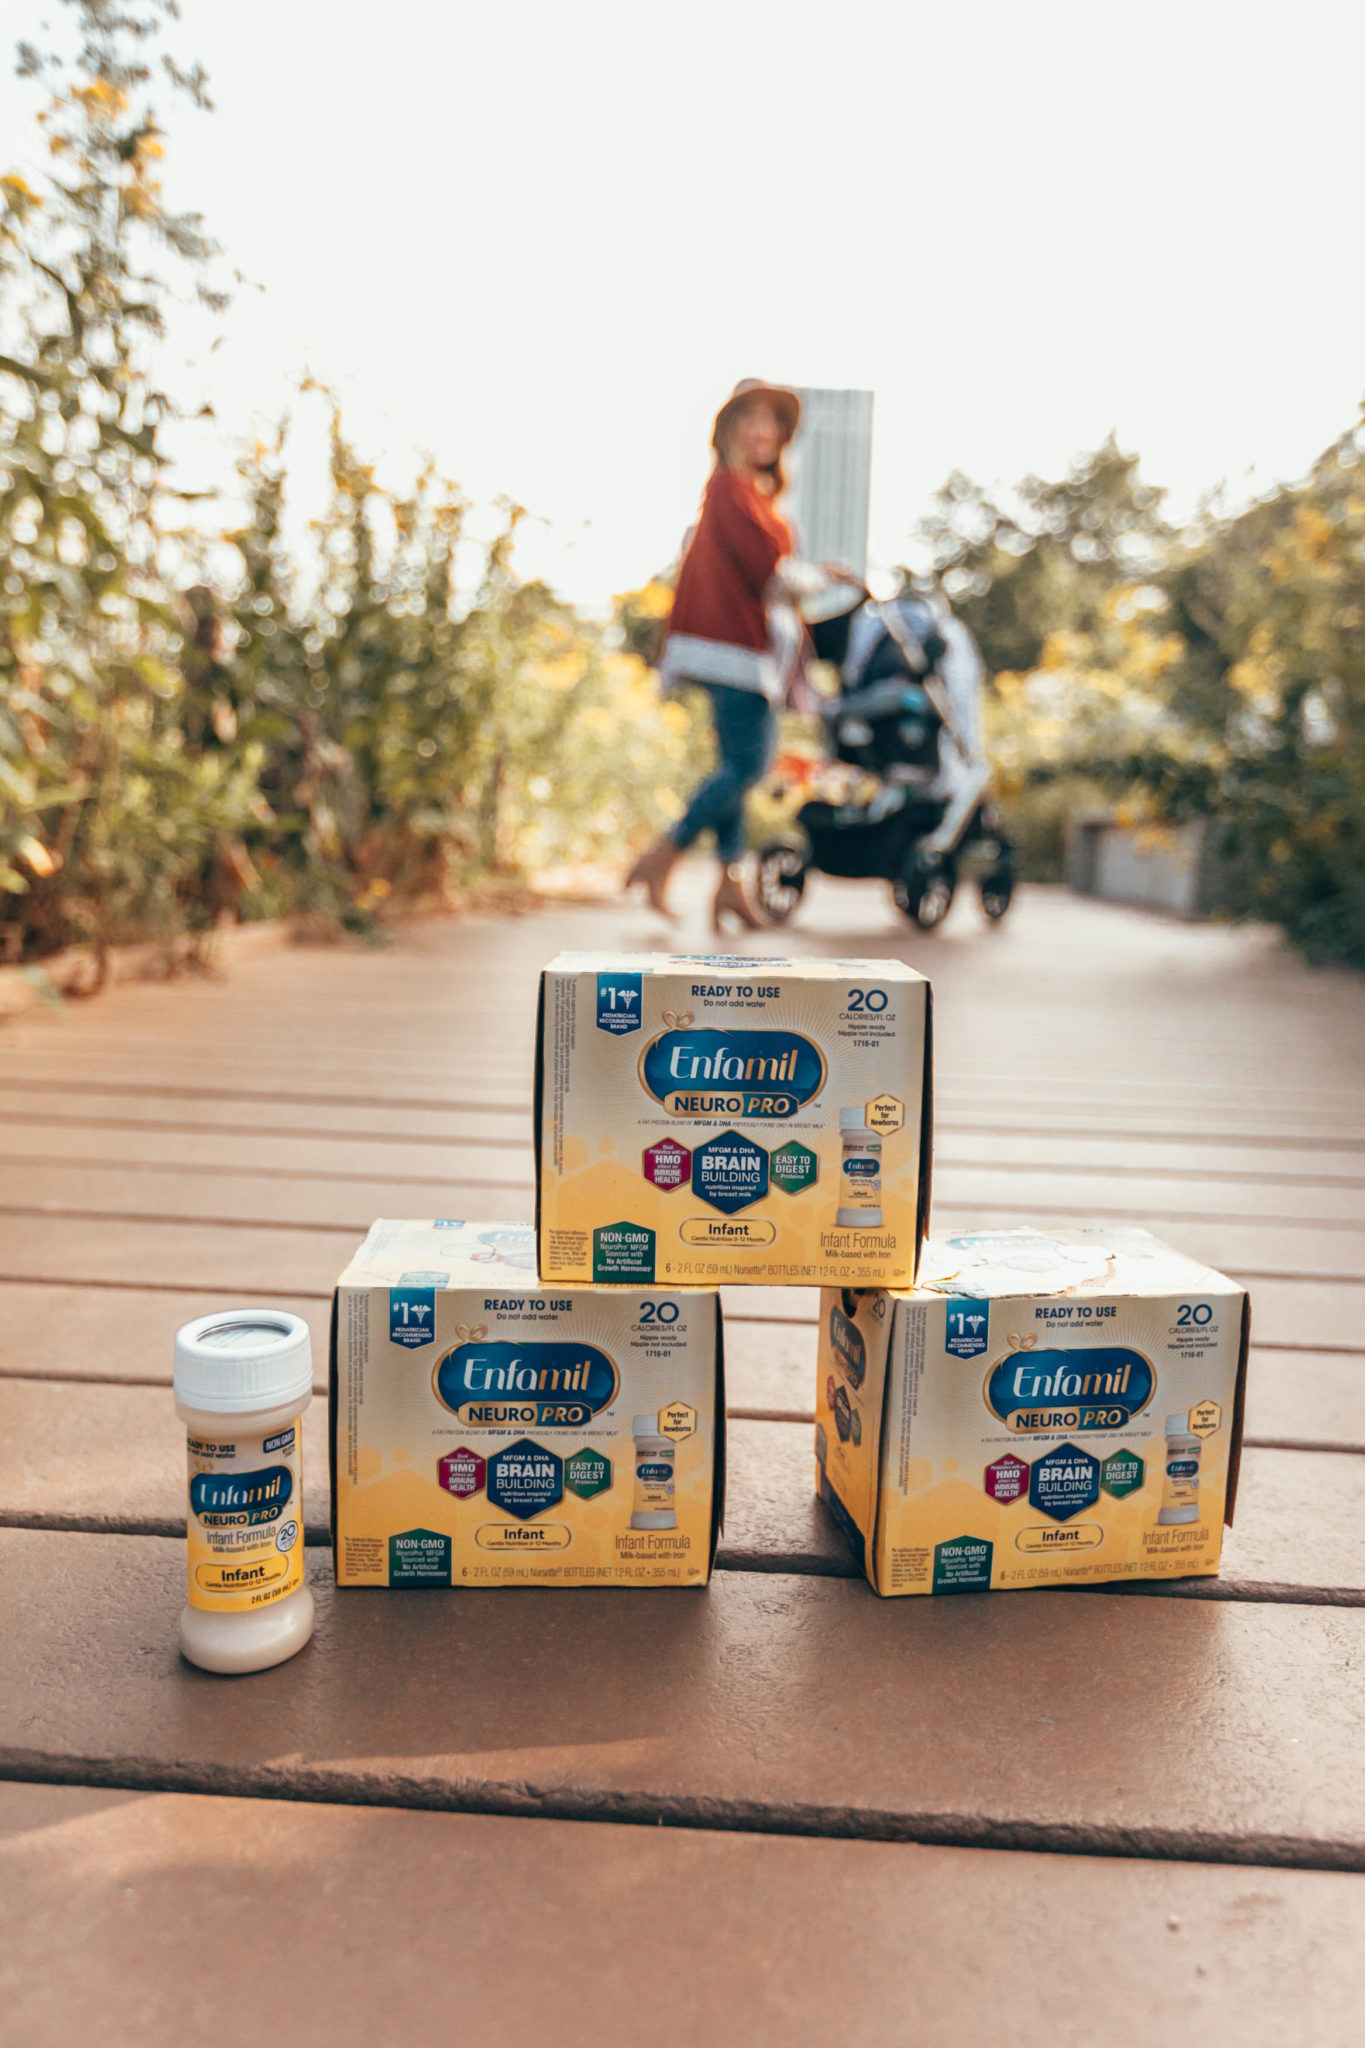 Enfamil NeuroPro Infant Formula Is My Baby Formula Choice by popular Chicago mom blog, Glass of Glam: image of Enfamil NeuroPro Infant Formula.